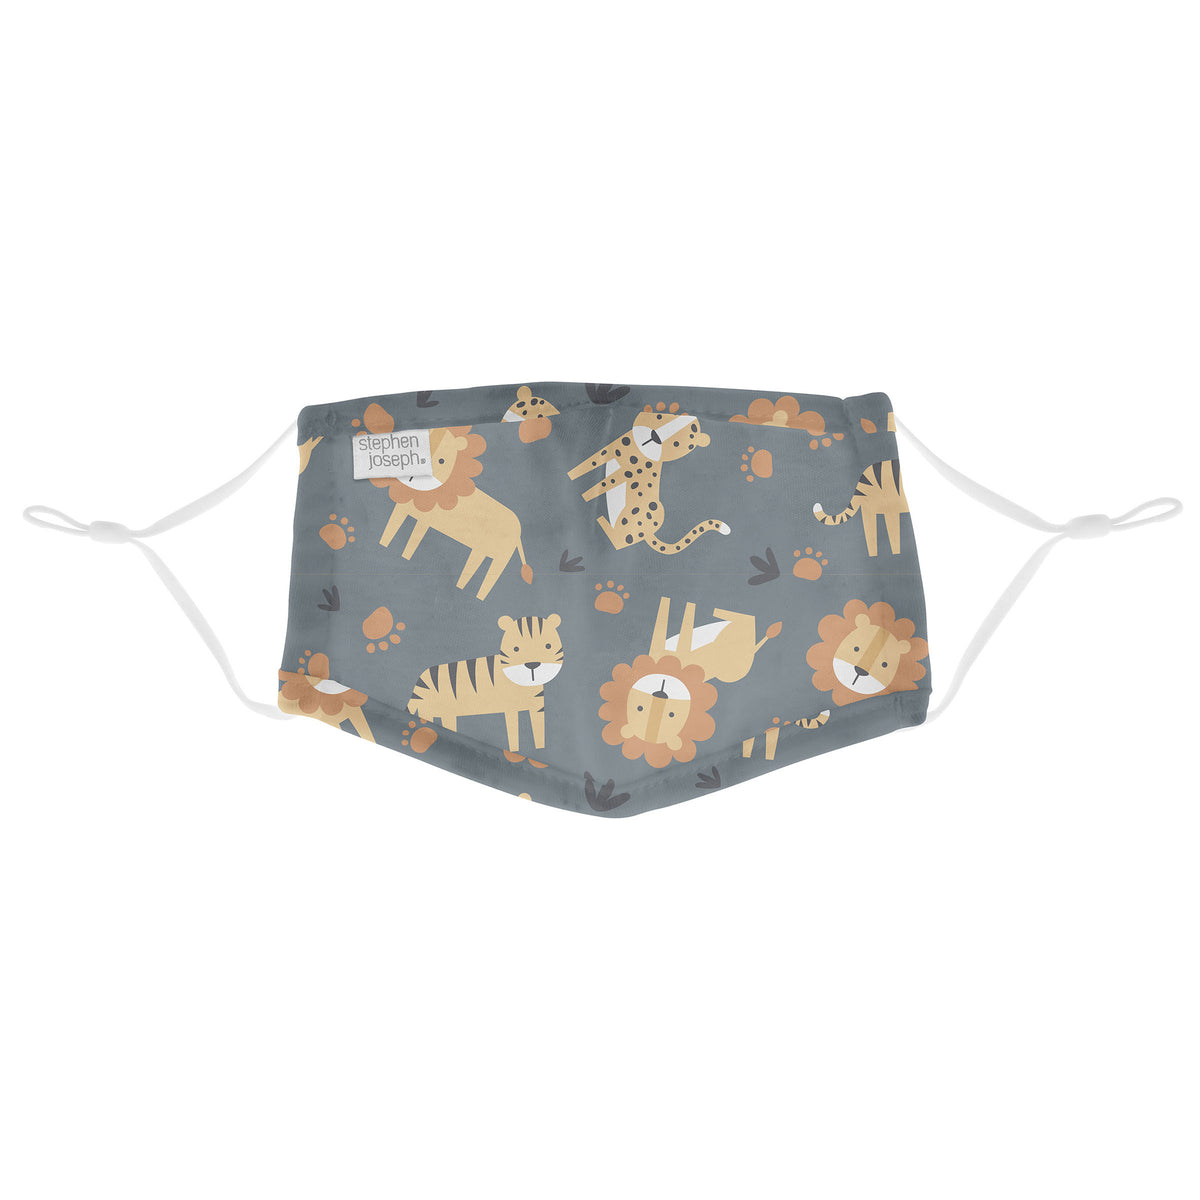 Children's Cotton Face Mask - Big Cats